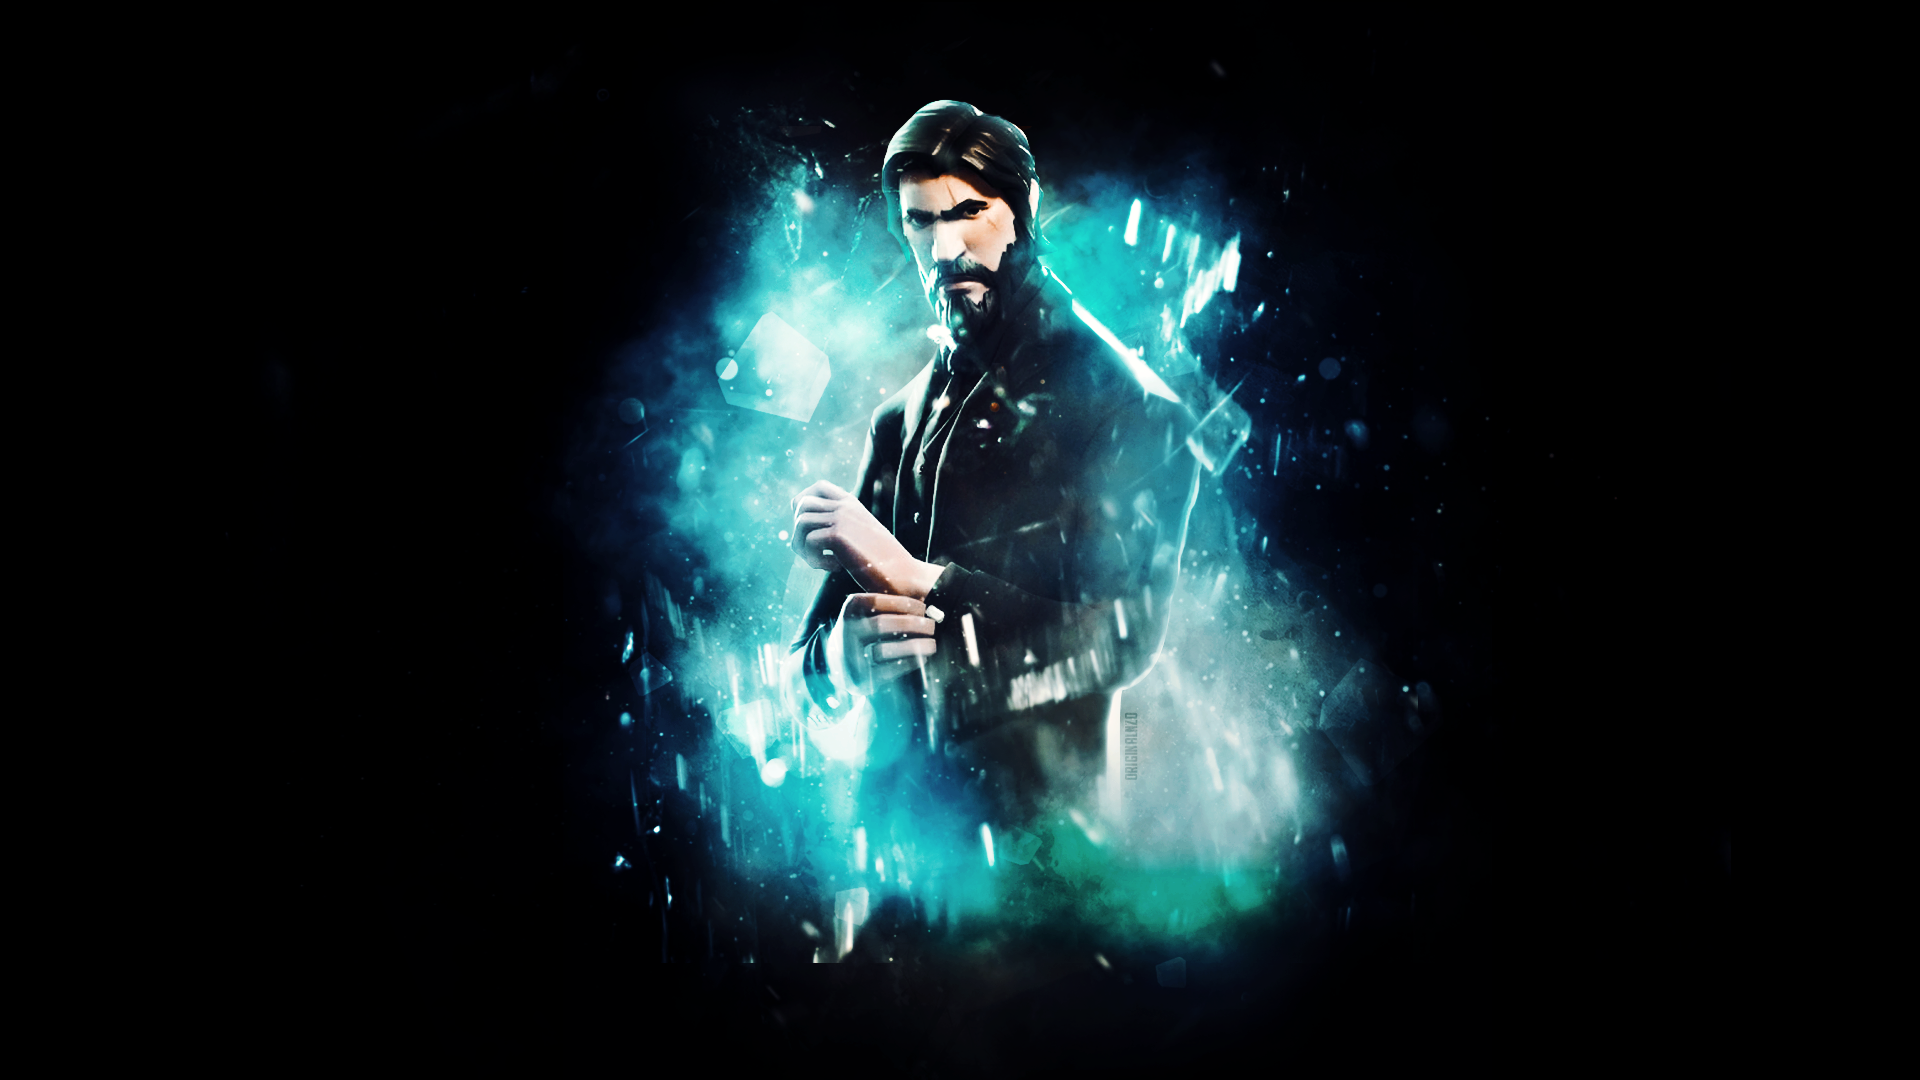 The Reaper John Wick Wallpaper EDIT FortNiteBR 1920x1080